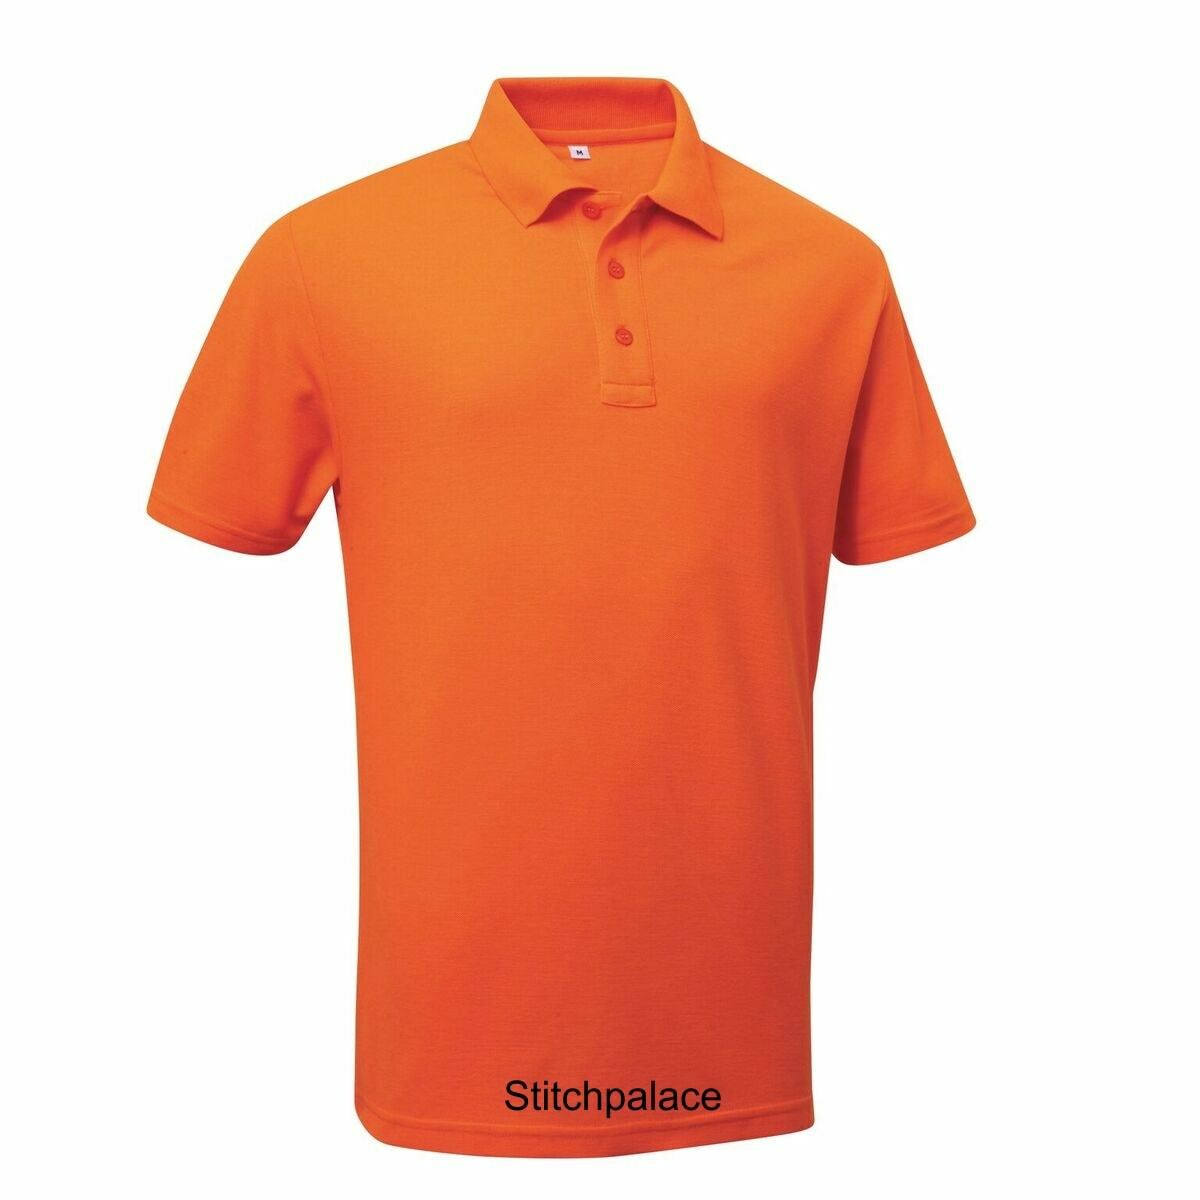 5 Quality Pro Piqué Polo Shirts Embroidered with Your Logo on Chest S-7XL